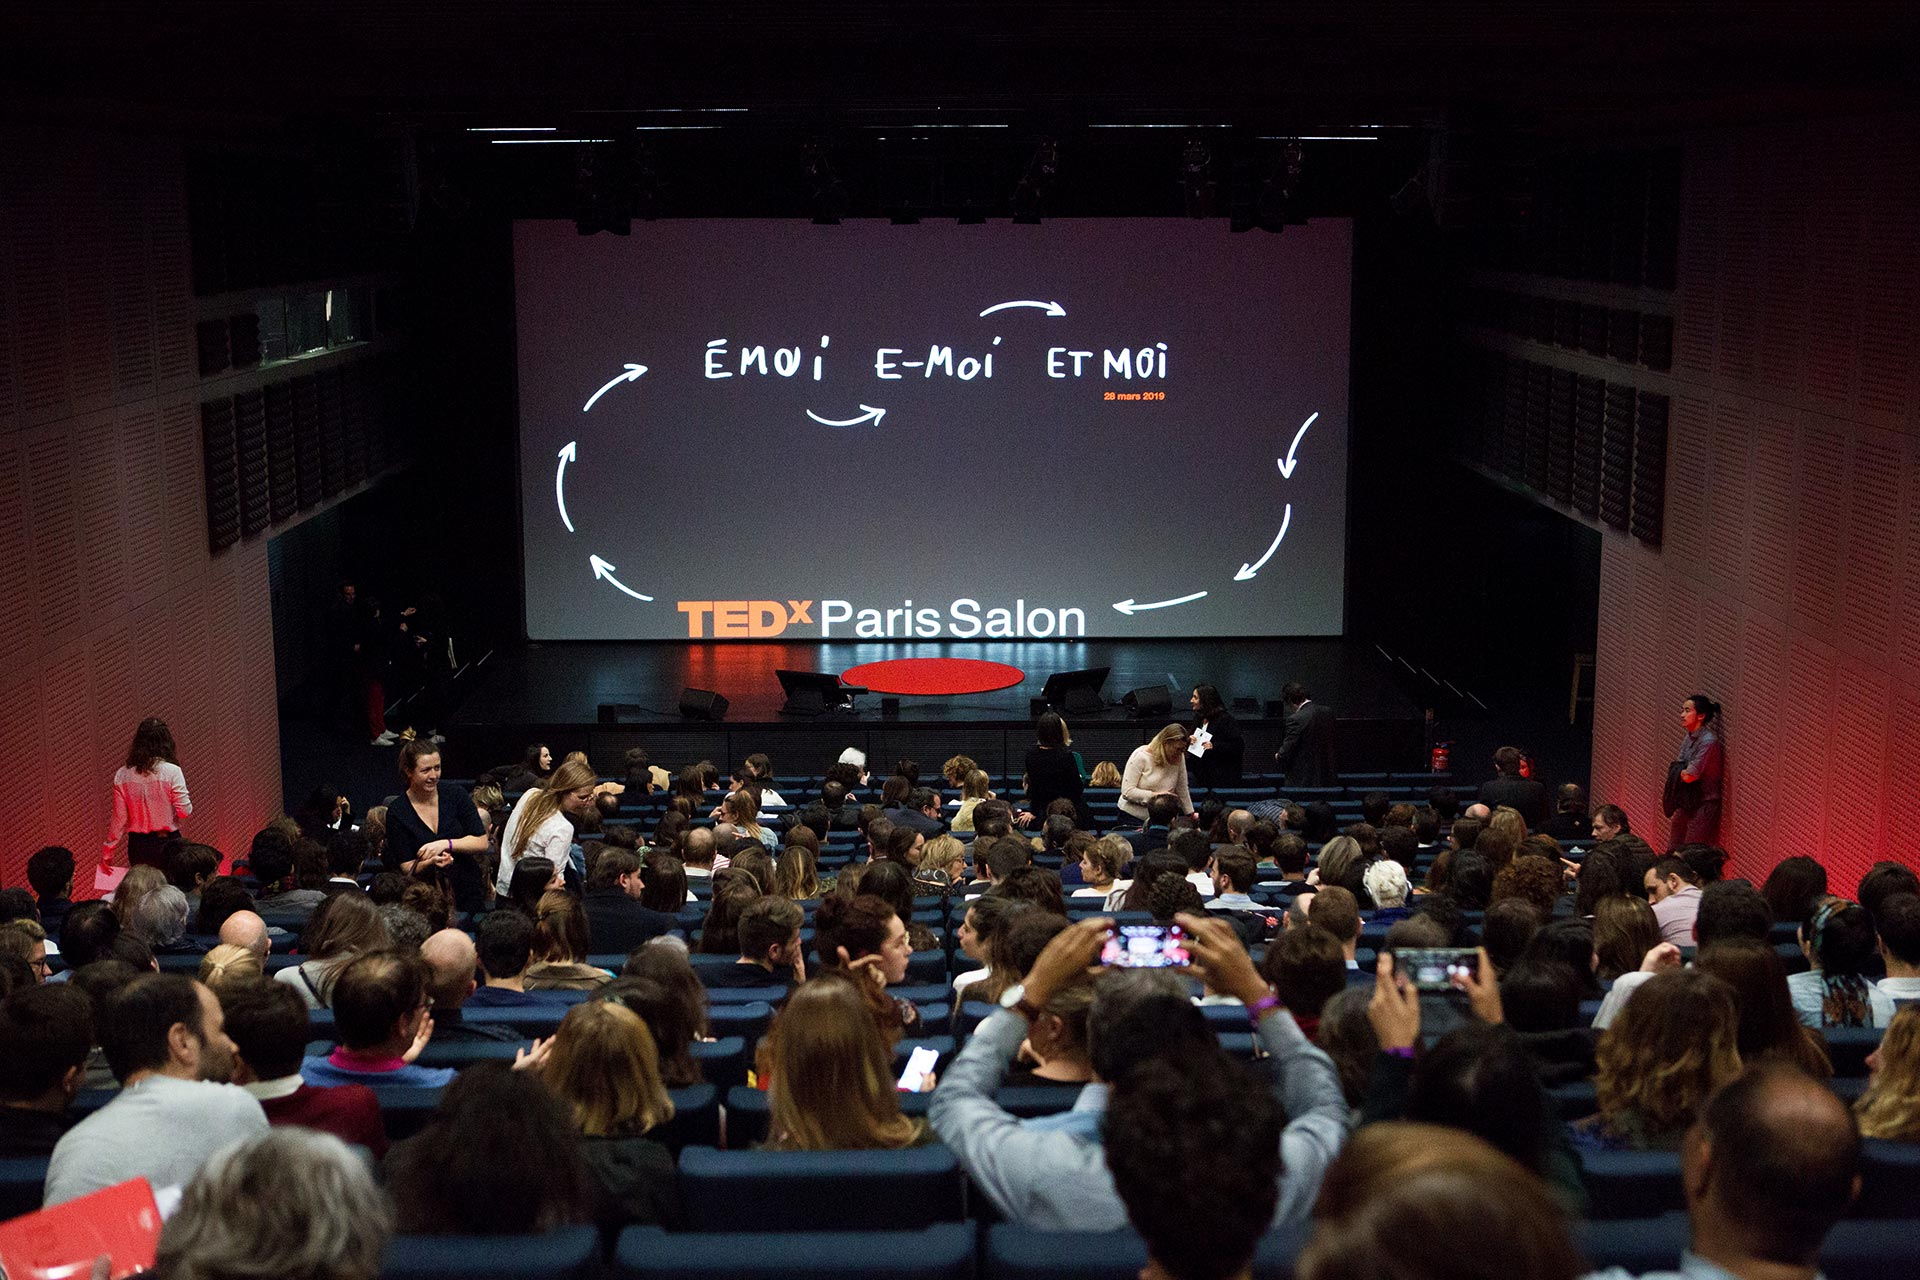 conference-TEDxParisSalon-2019-3.jpg